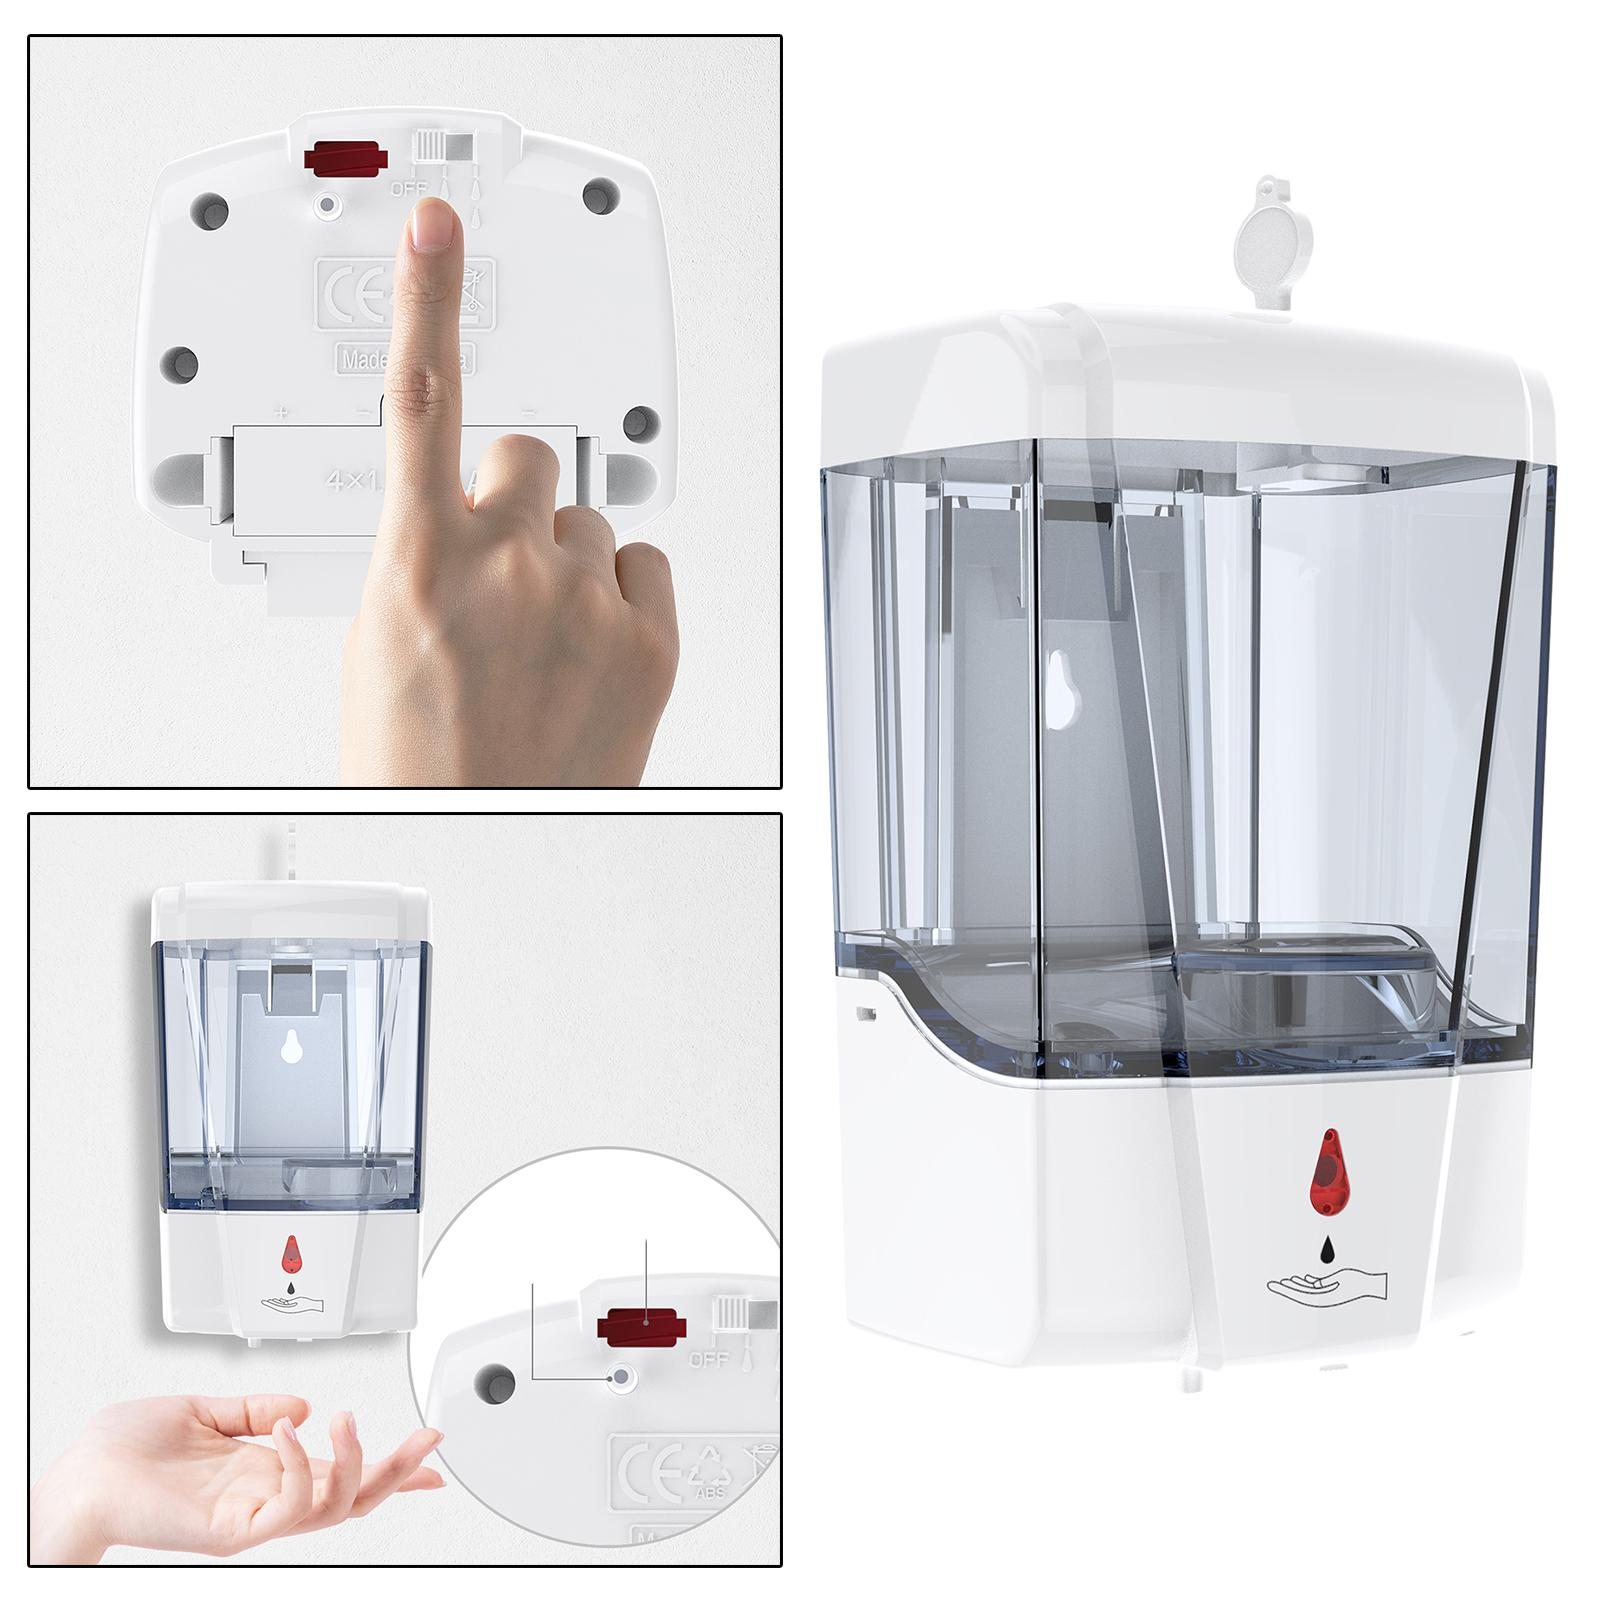 700ML Automatic Liquid Soap Dispenser Touchless Wall-mounted Home IR Sensor